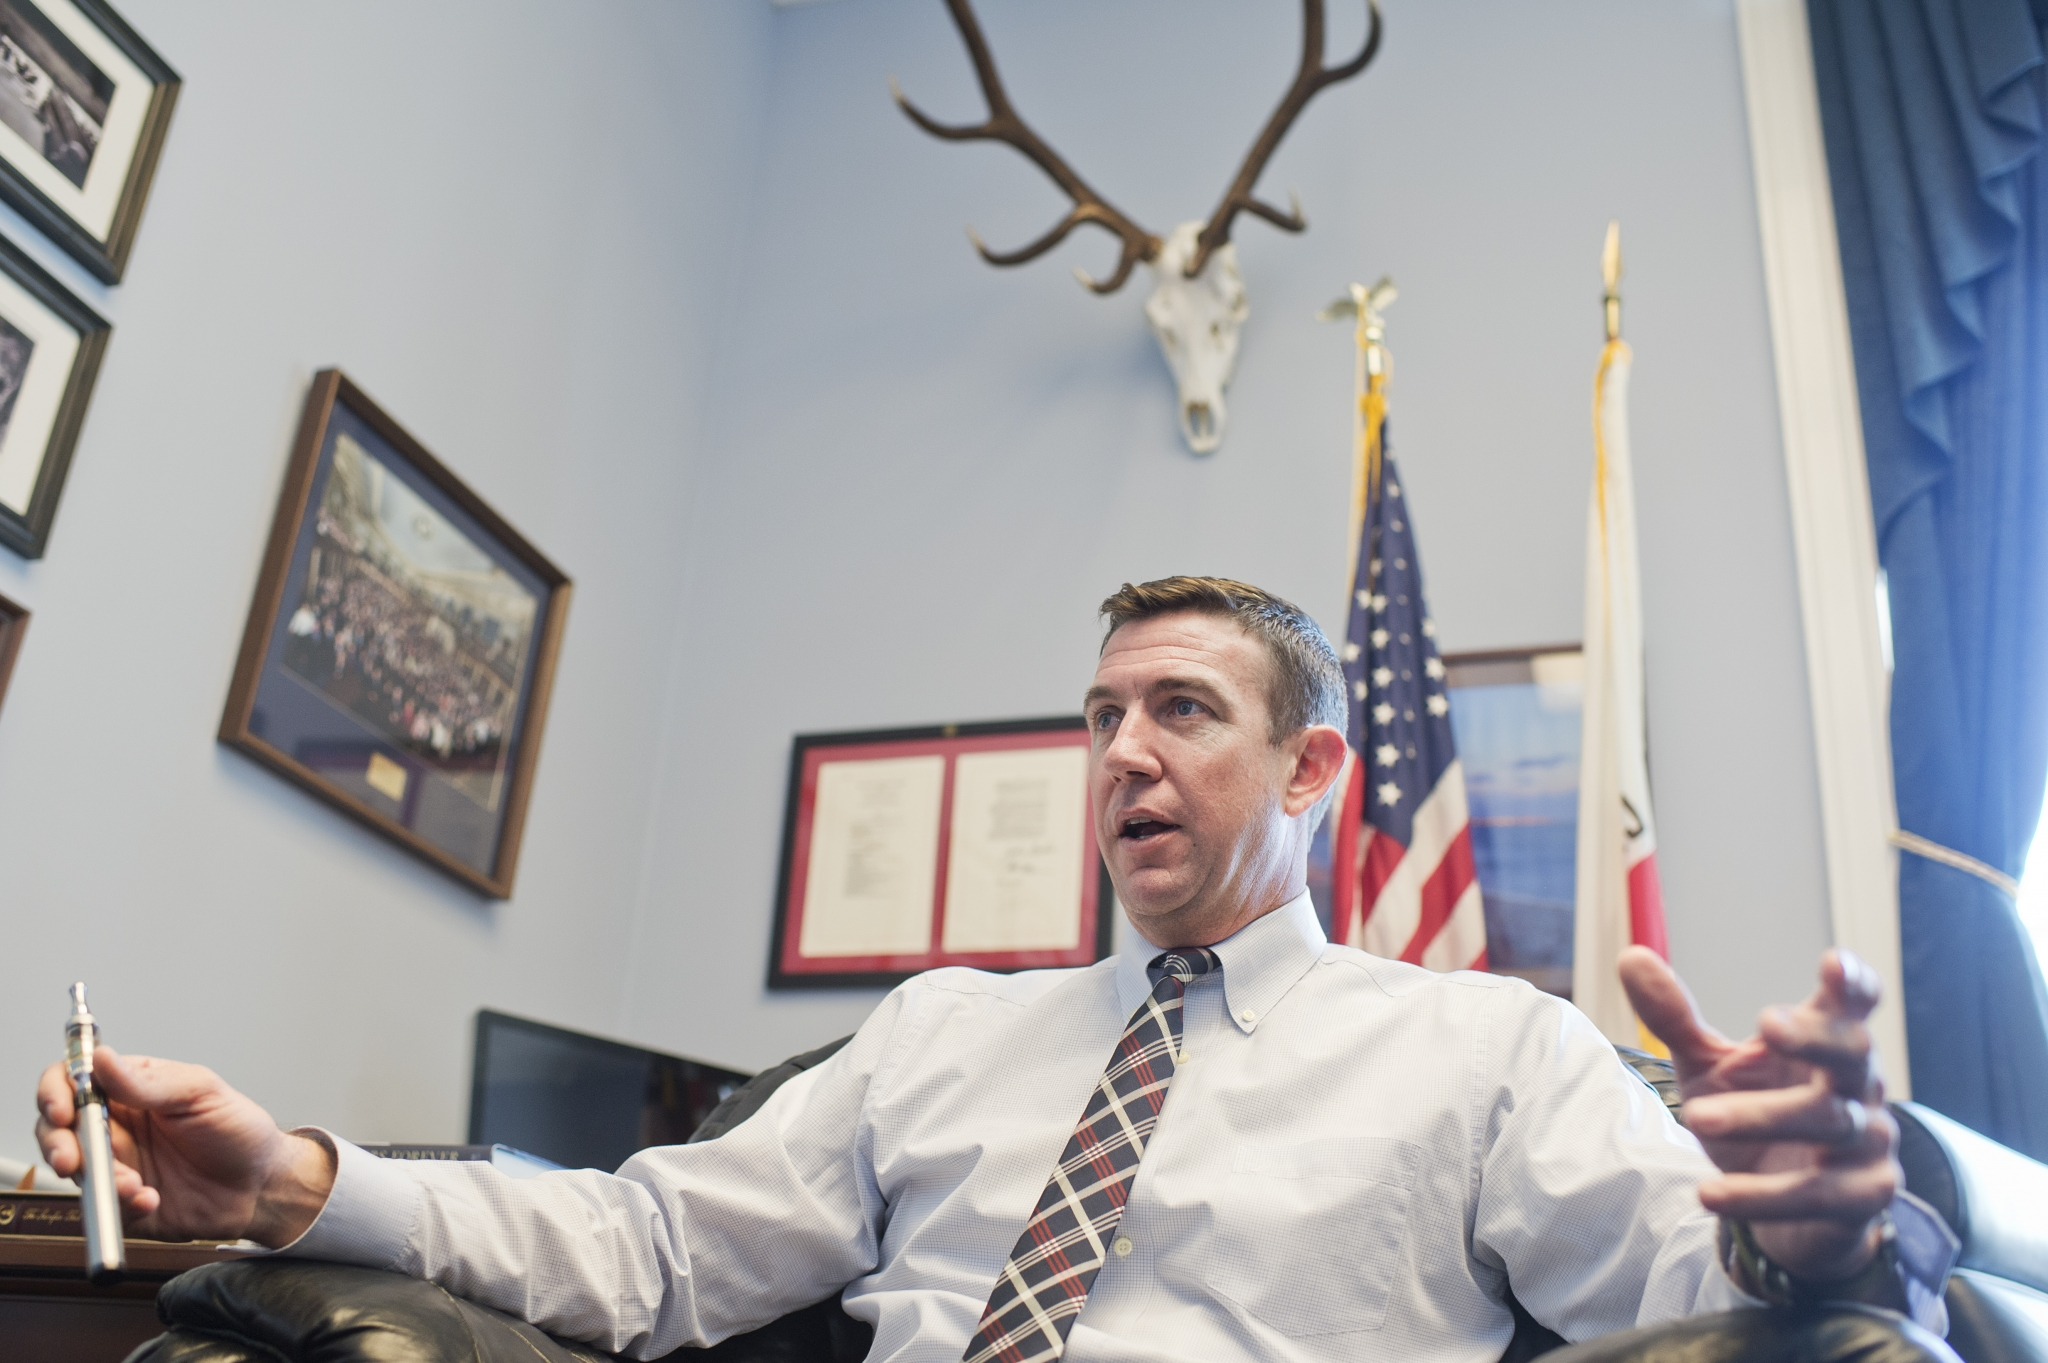 Former Congressman and combat veteran Duncan L Hunter has written an outstanding historical read He had the unique perspective as the Chairperson of the House of